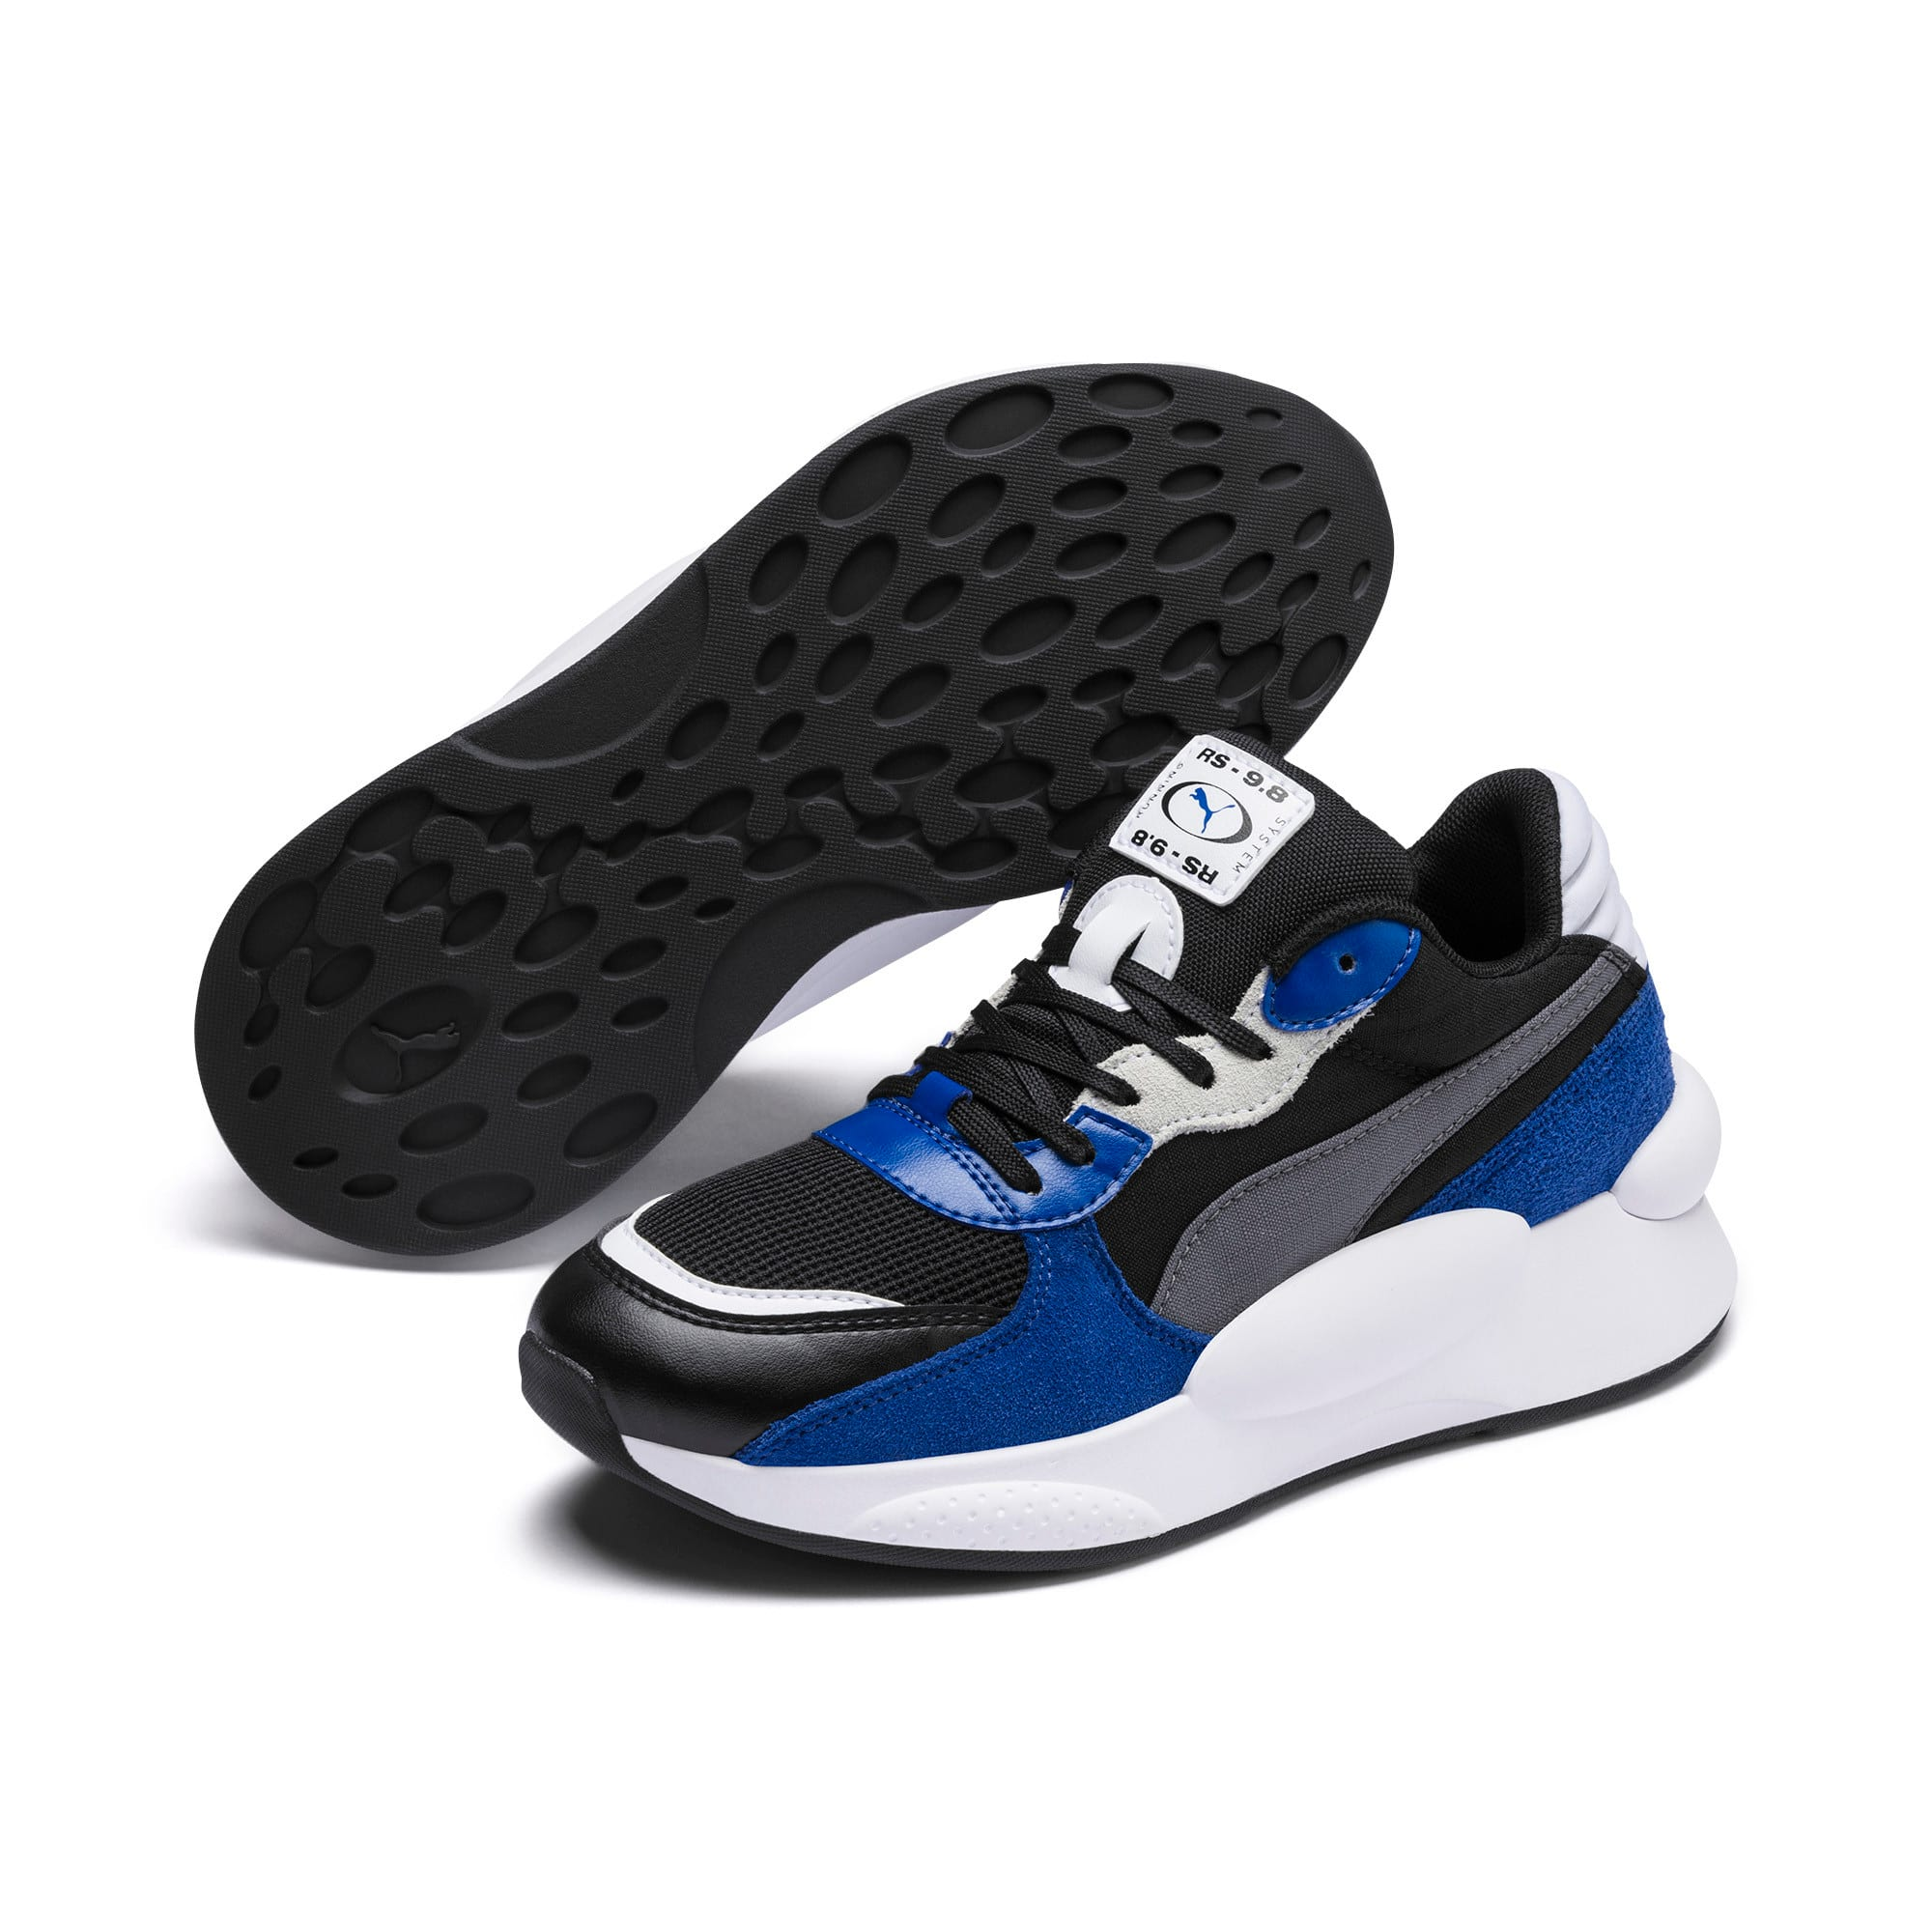 Thumbnail 2 of RS 9.8 Space Youth Sneaker, Puma Black-Galaxy Blue, medium